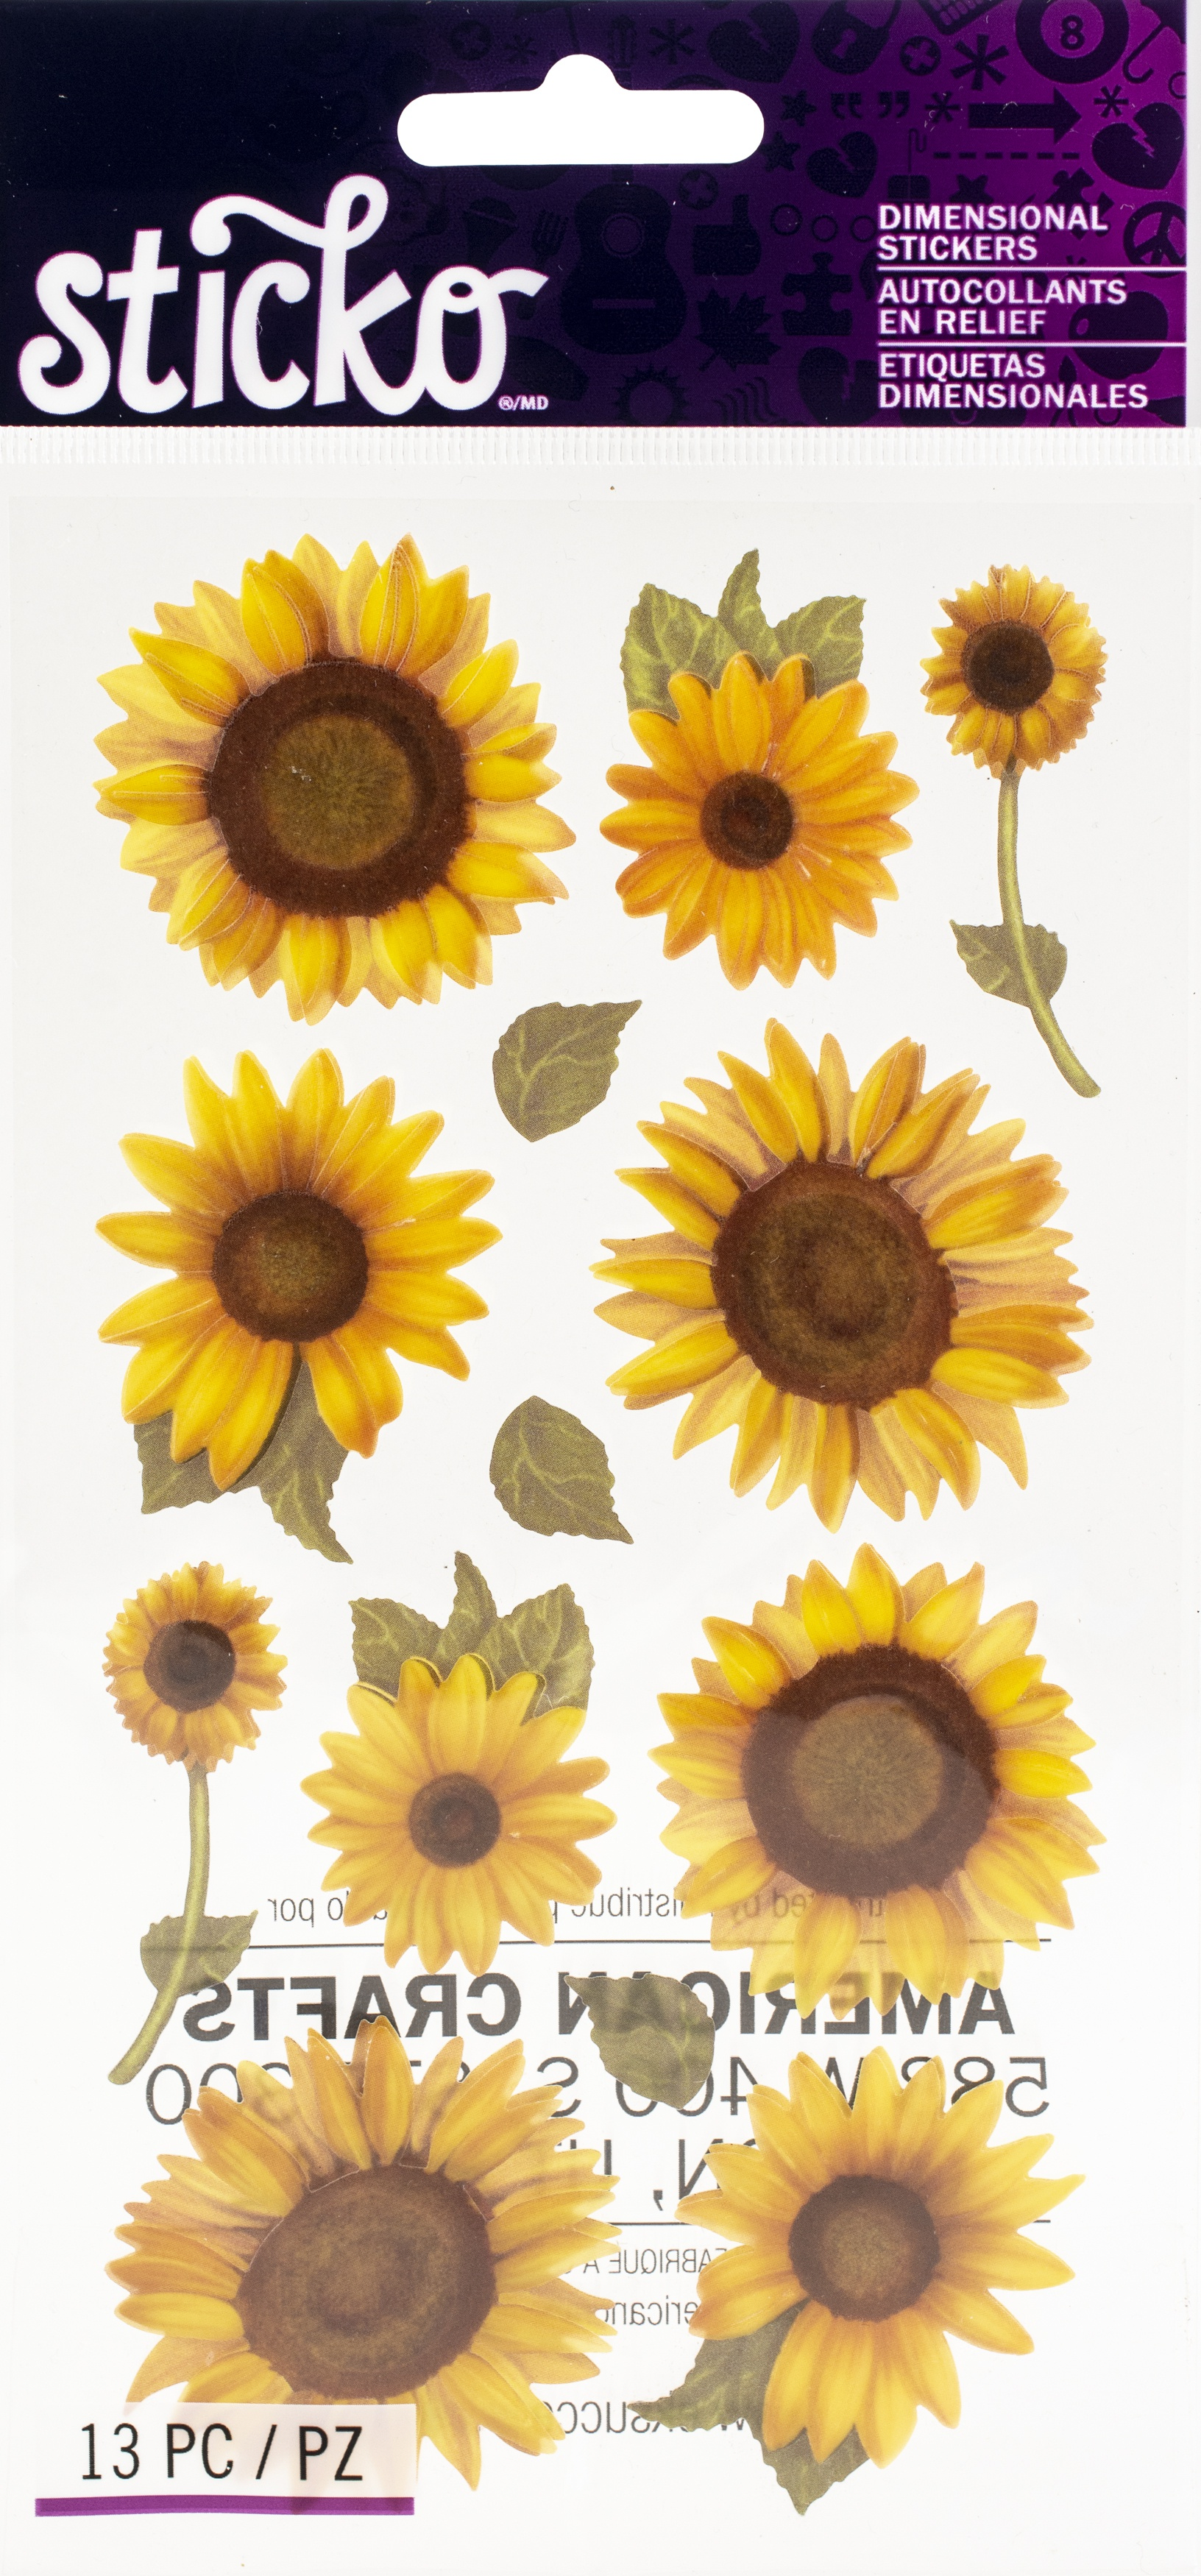 Sticko Dimensional Stickers-Sunflowers